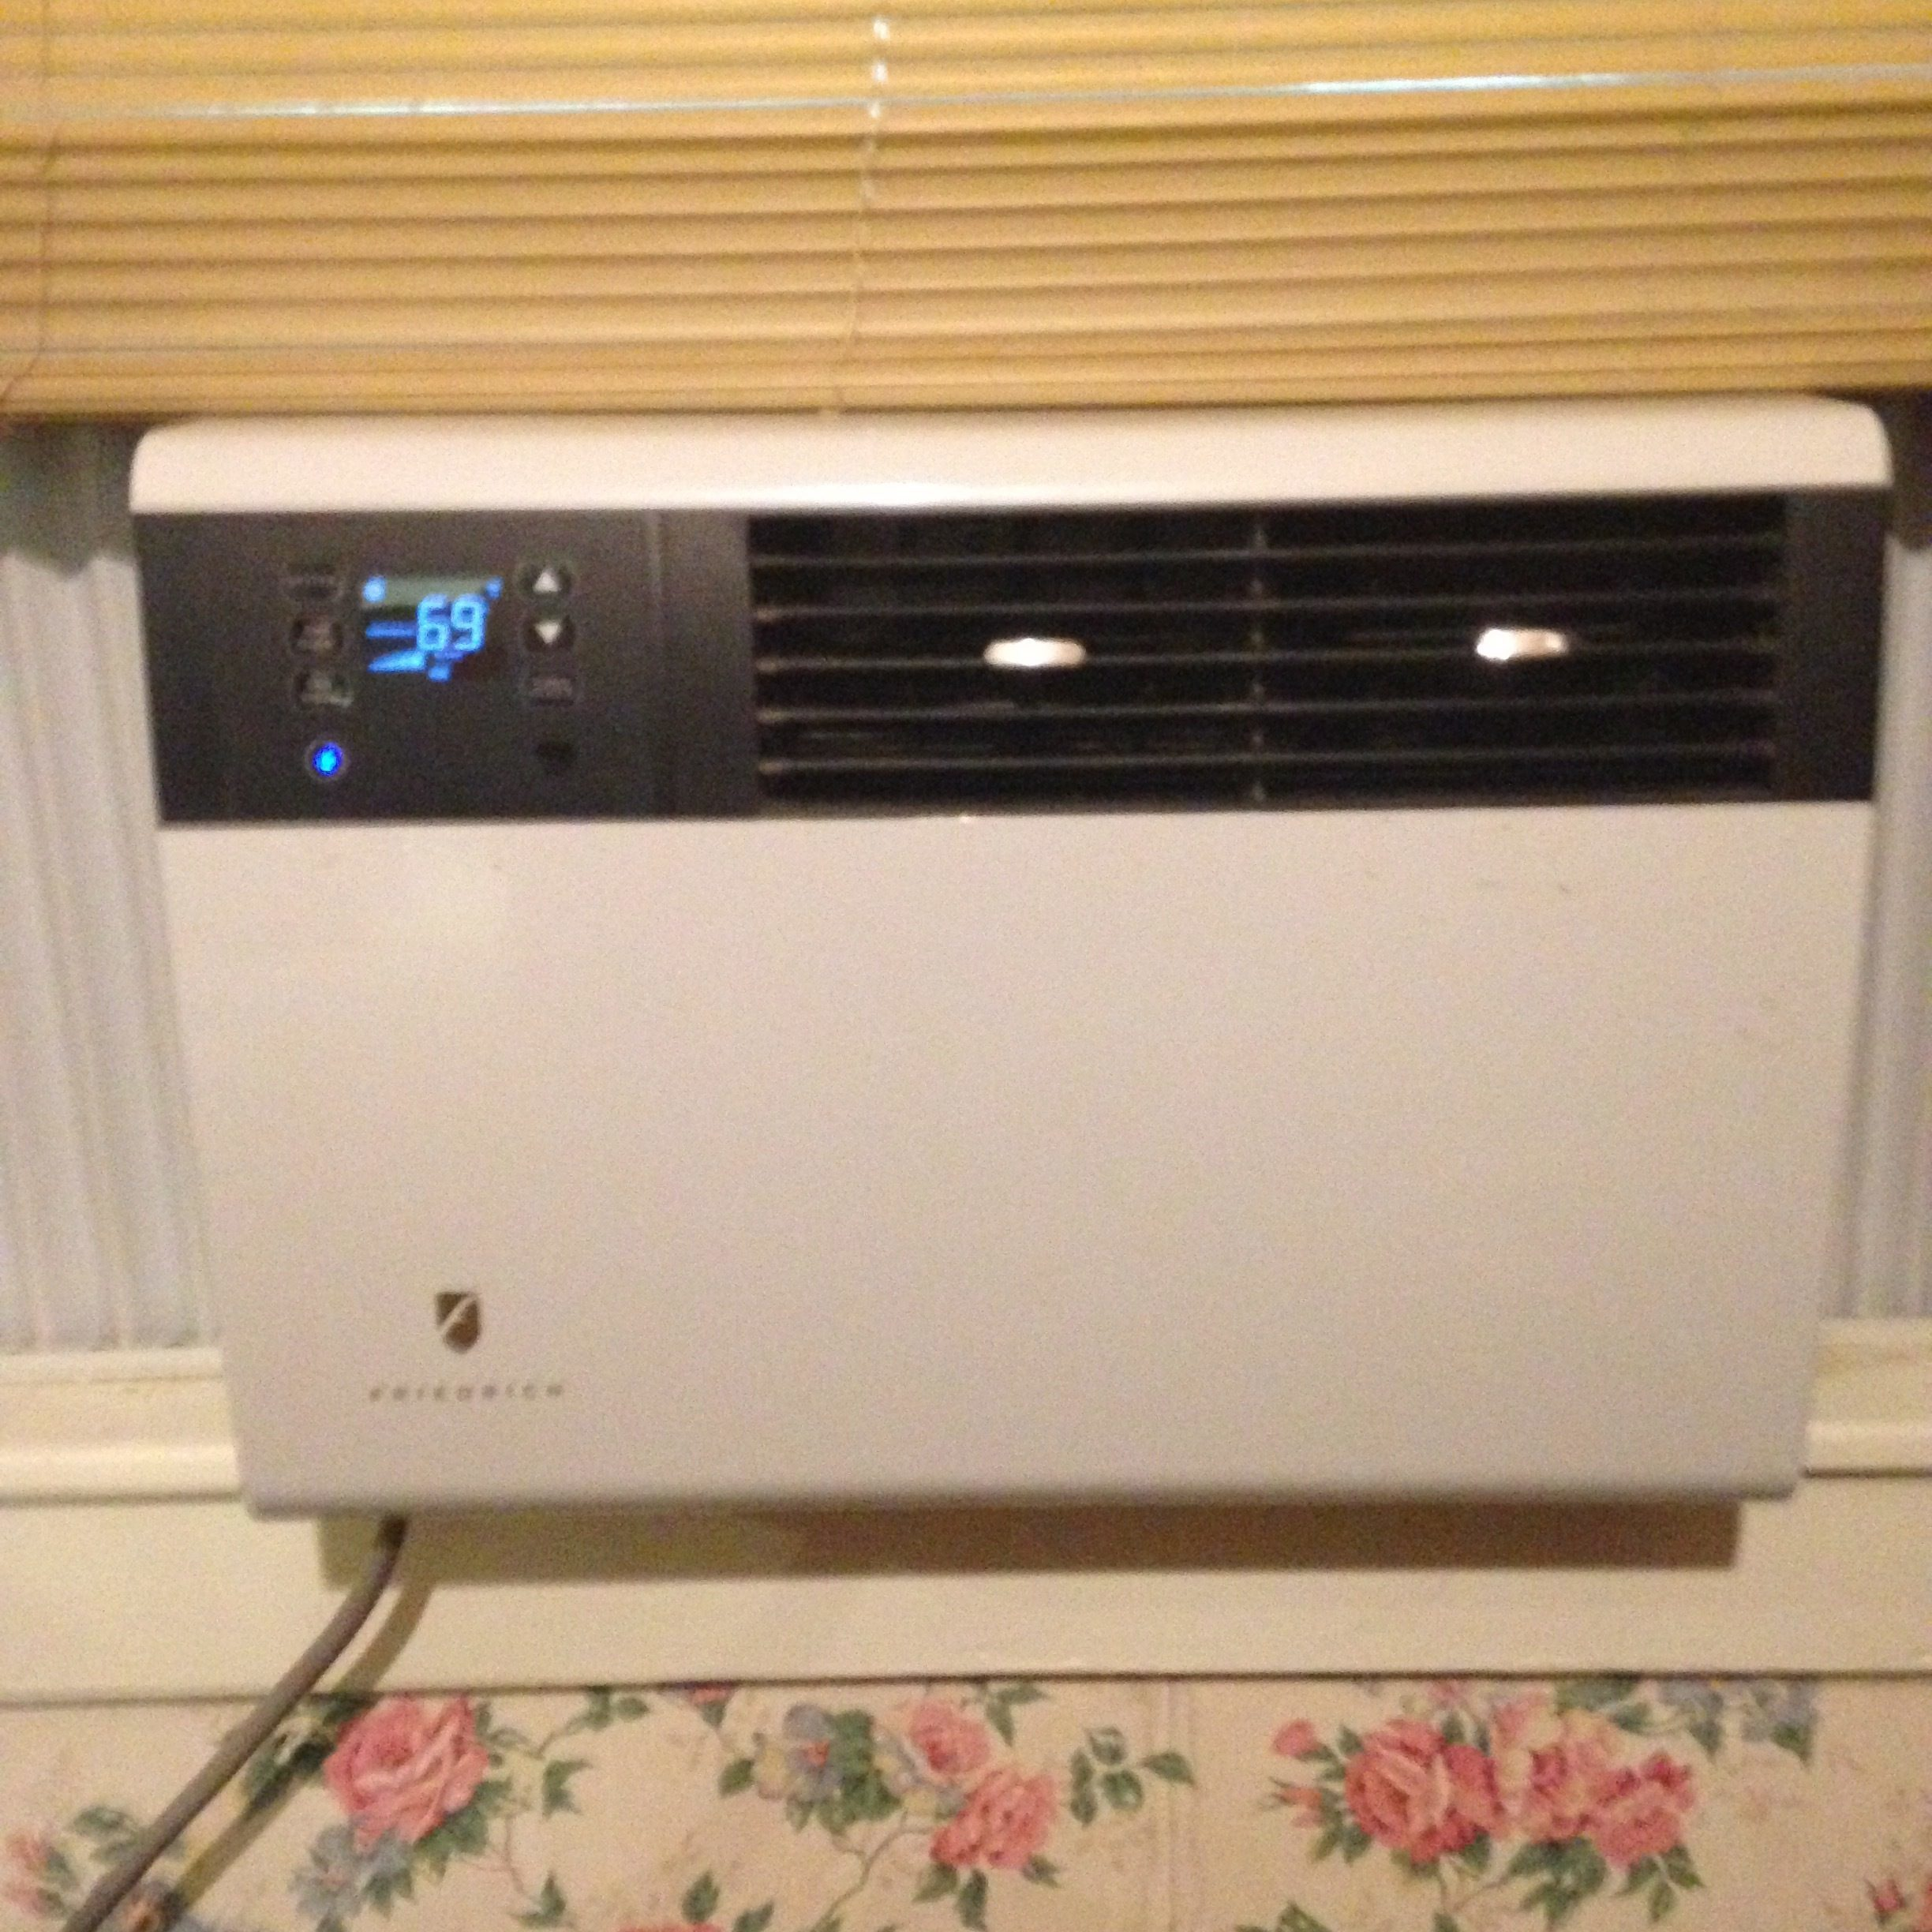 Top 34 Complaints and Reviews about Friedrich Air Conditioner #0A7DC1